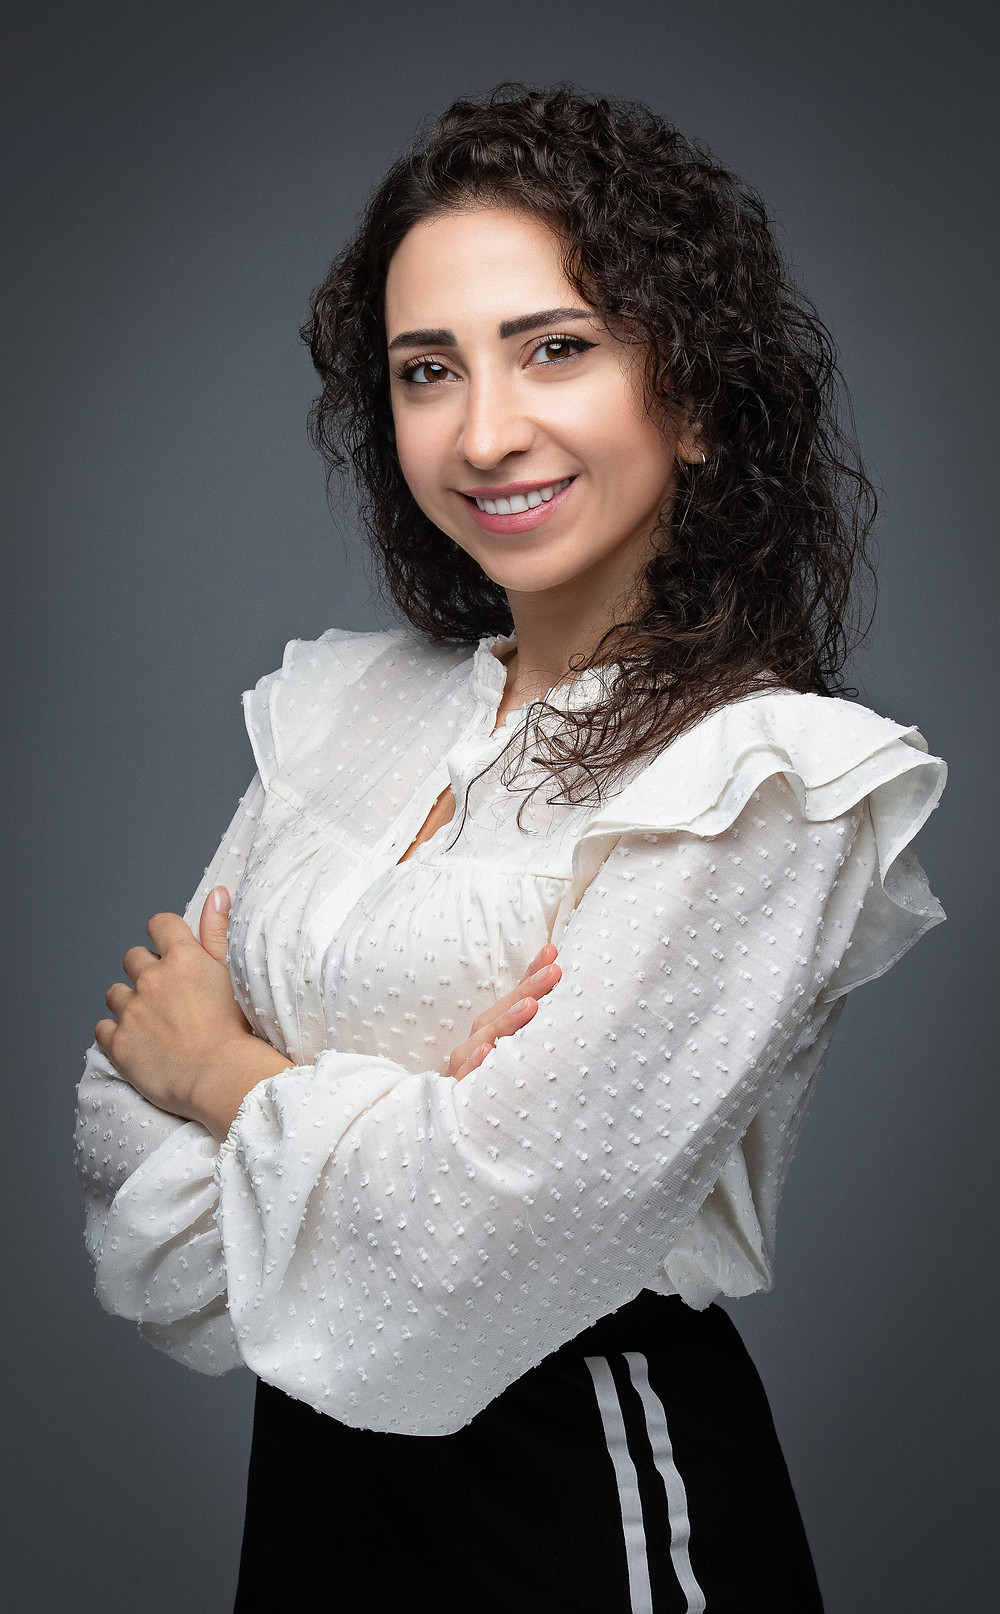 Lady posing for a professional corporate headshot